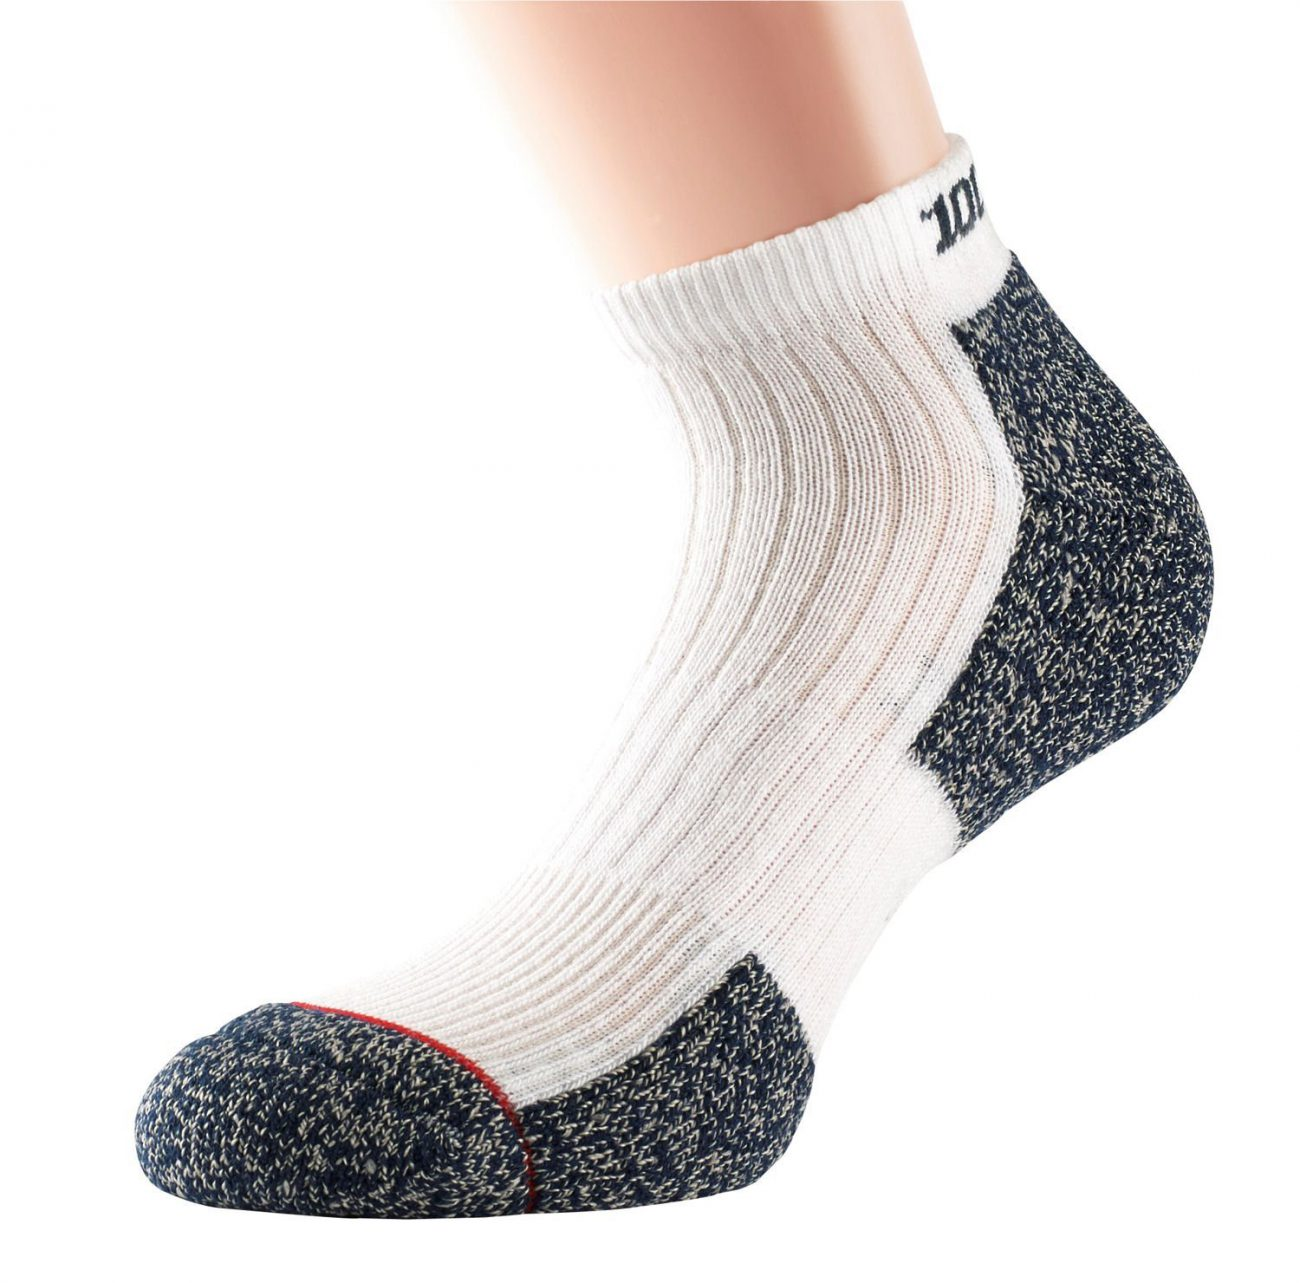 best trail running socks 1000 mile performance socks